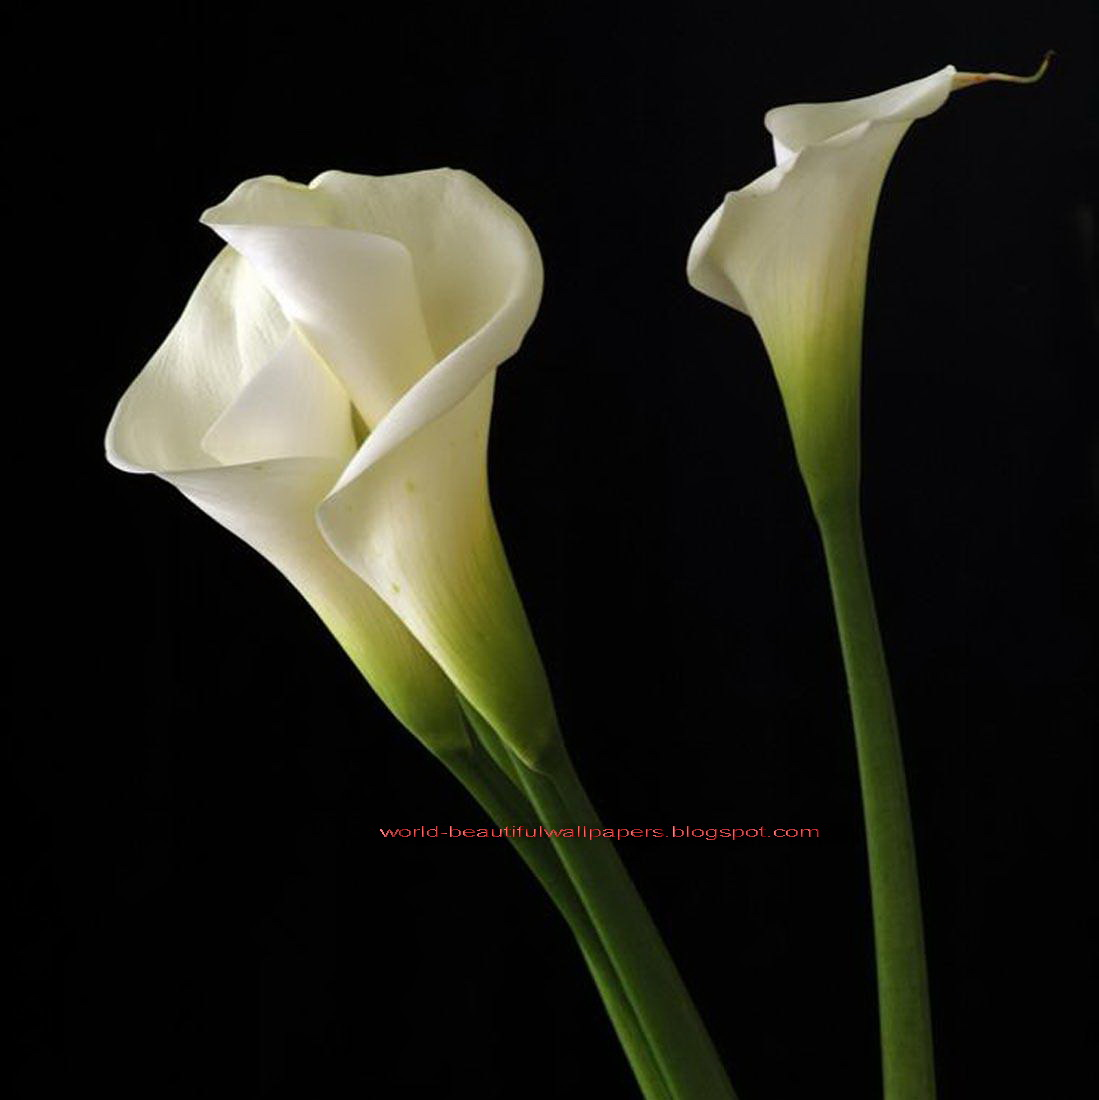 Beautiful Wallpapers calla lily flowers wallpaper 1099x1100